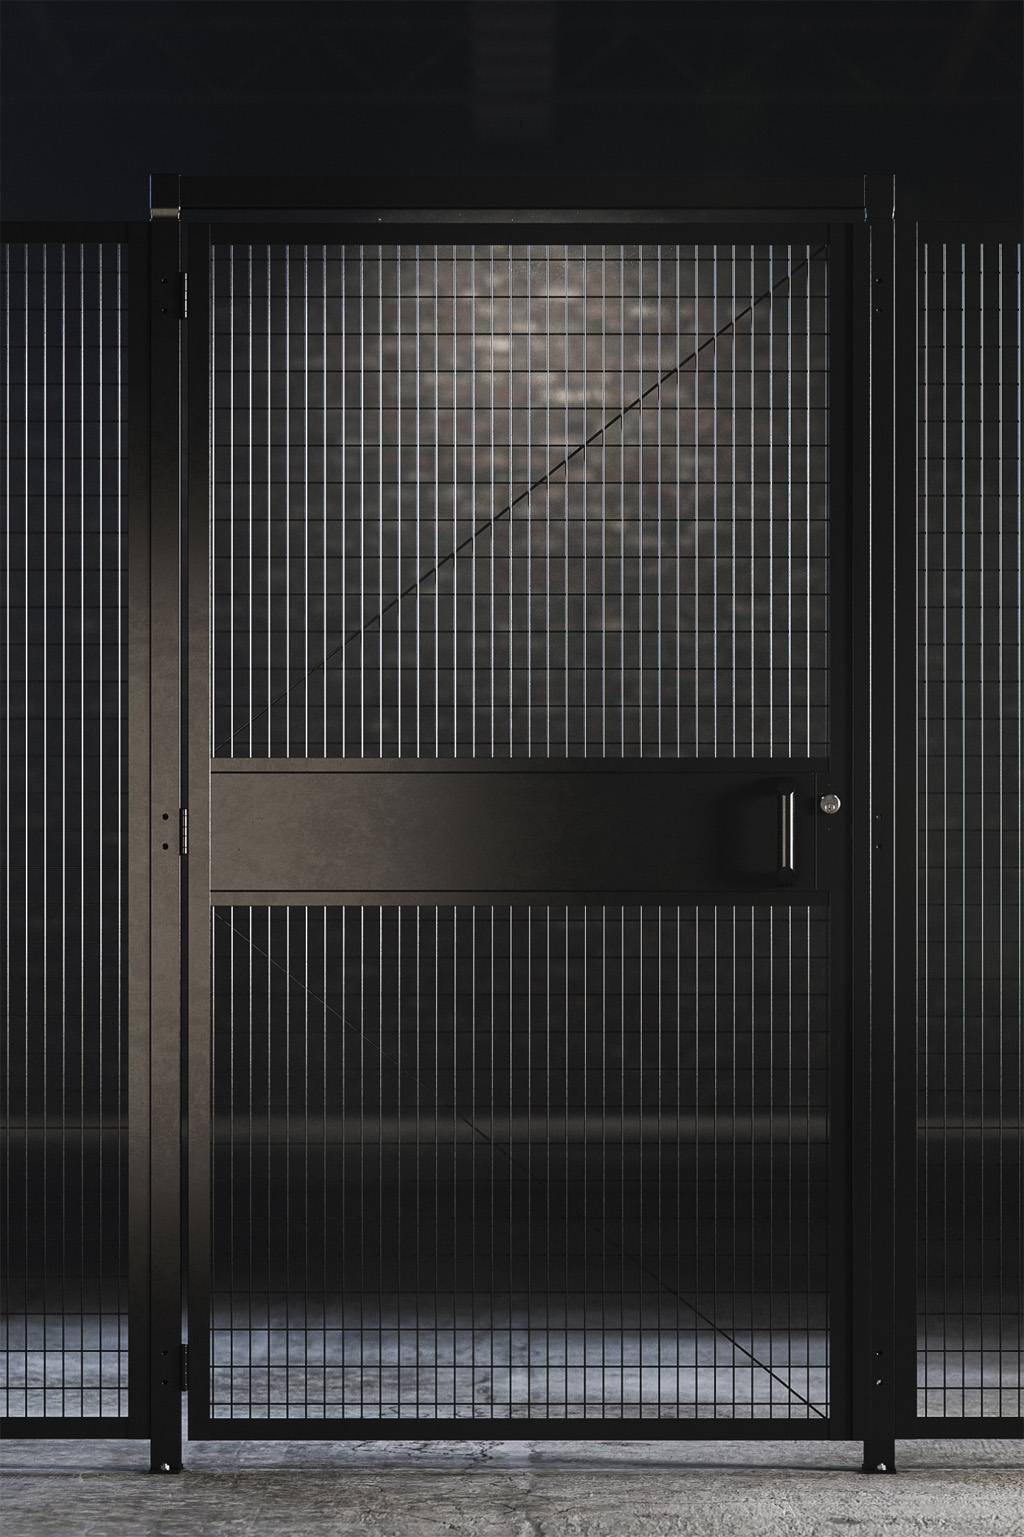 Saf-T-Fence® Partitions